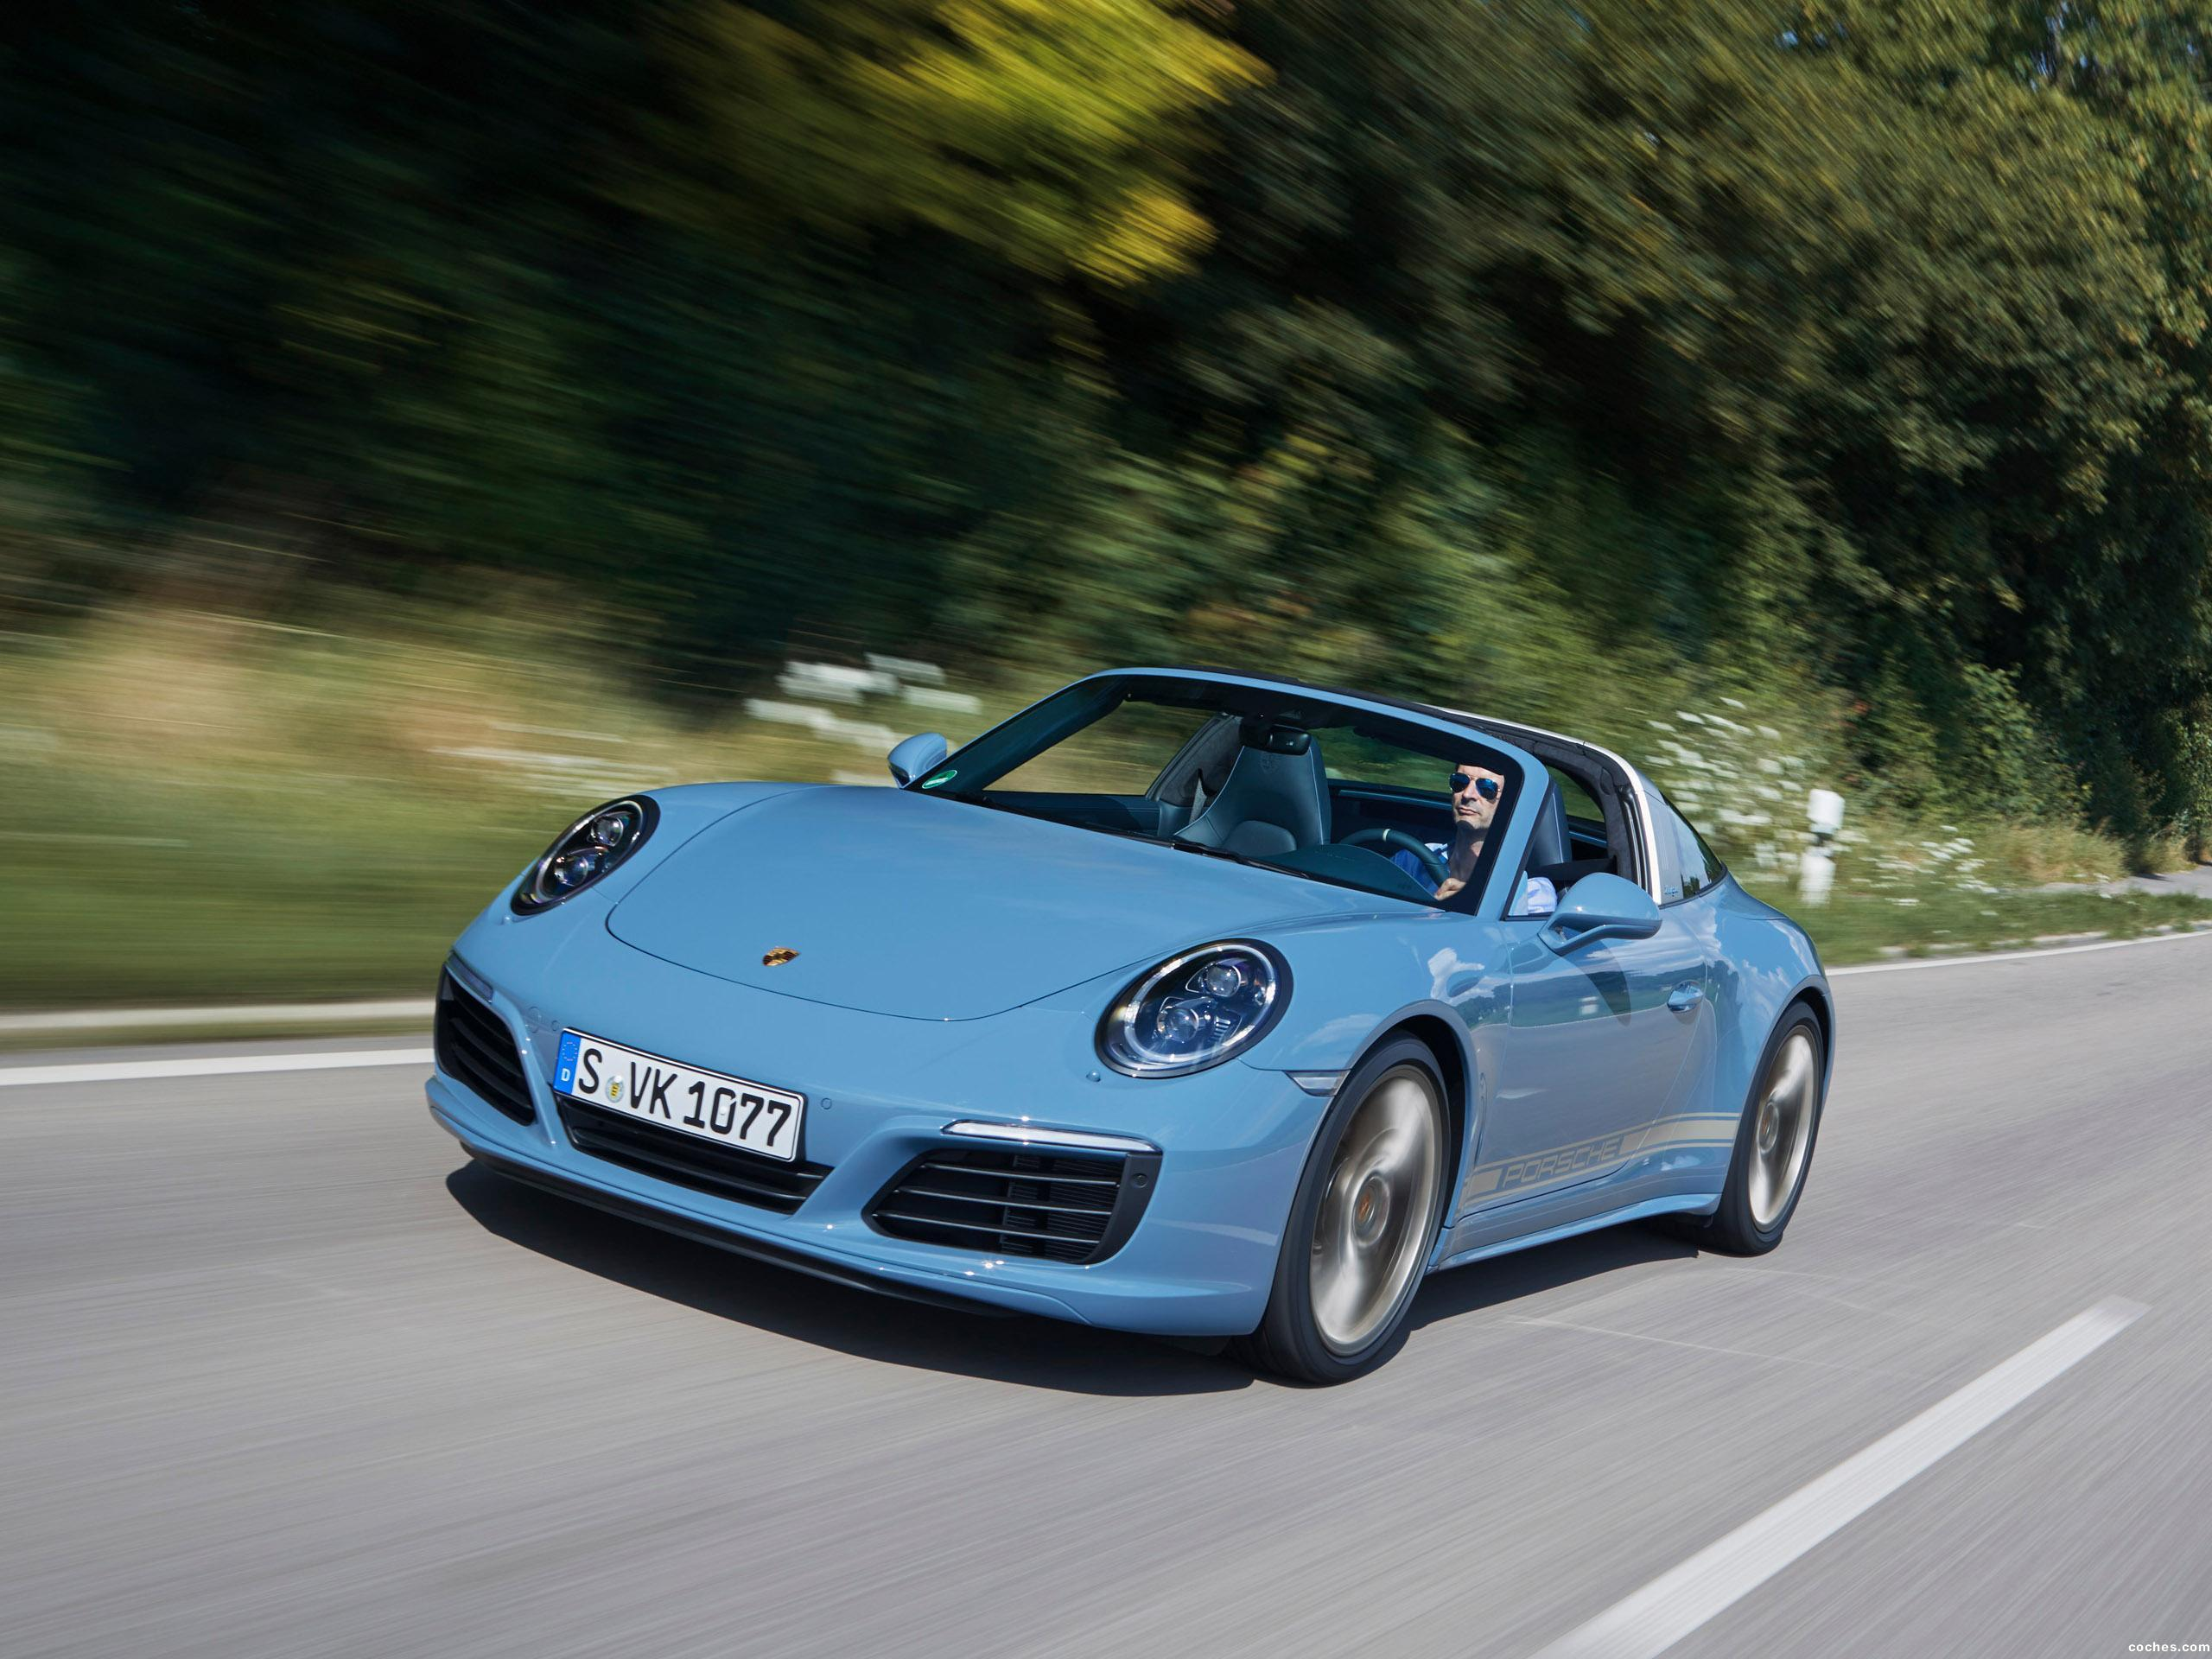 porsche_911-targa-4s-exclusive-design-edition-2016_r8.jpg